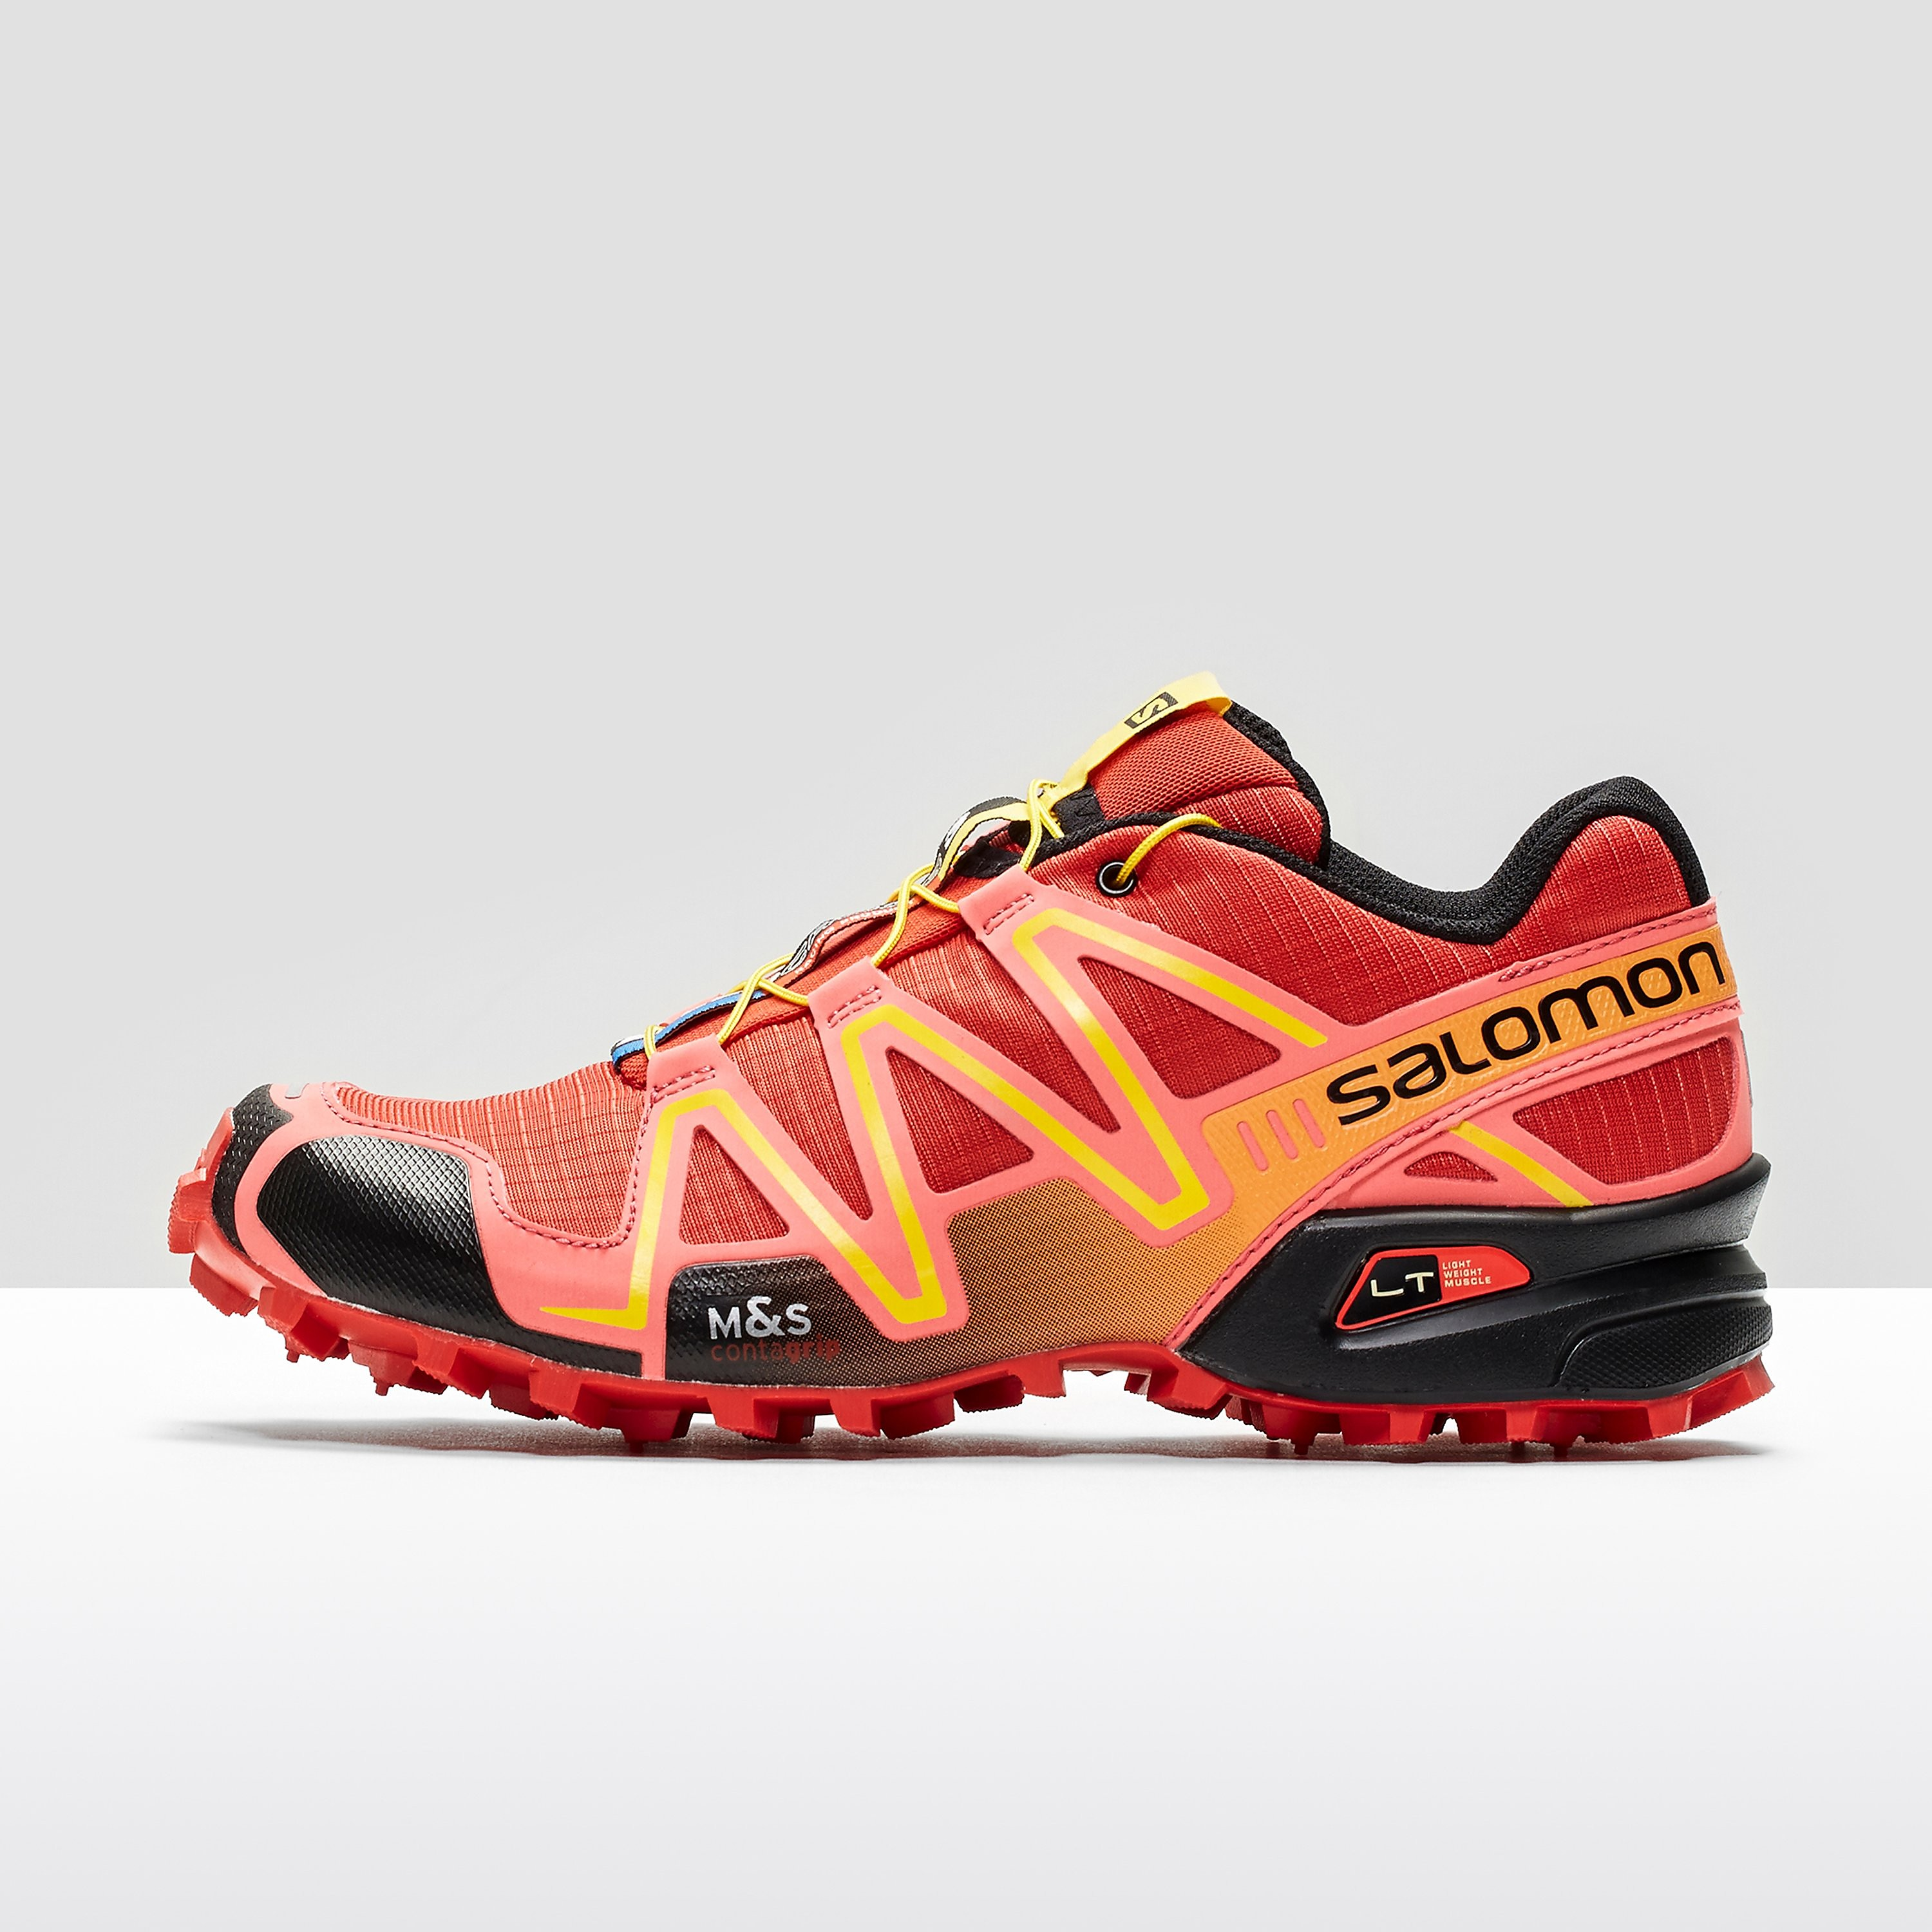 Salomon Speedcross 3 Ladies Trail Running Shoes